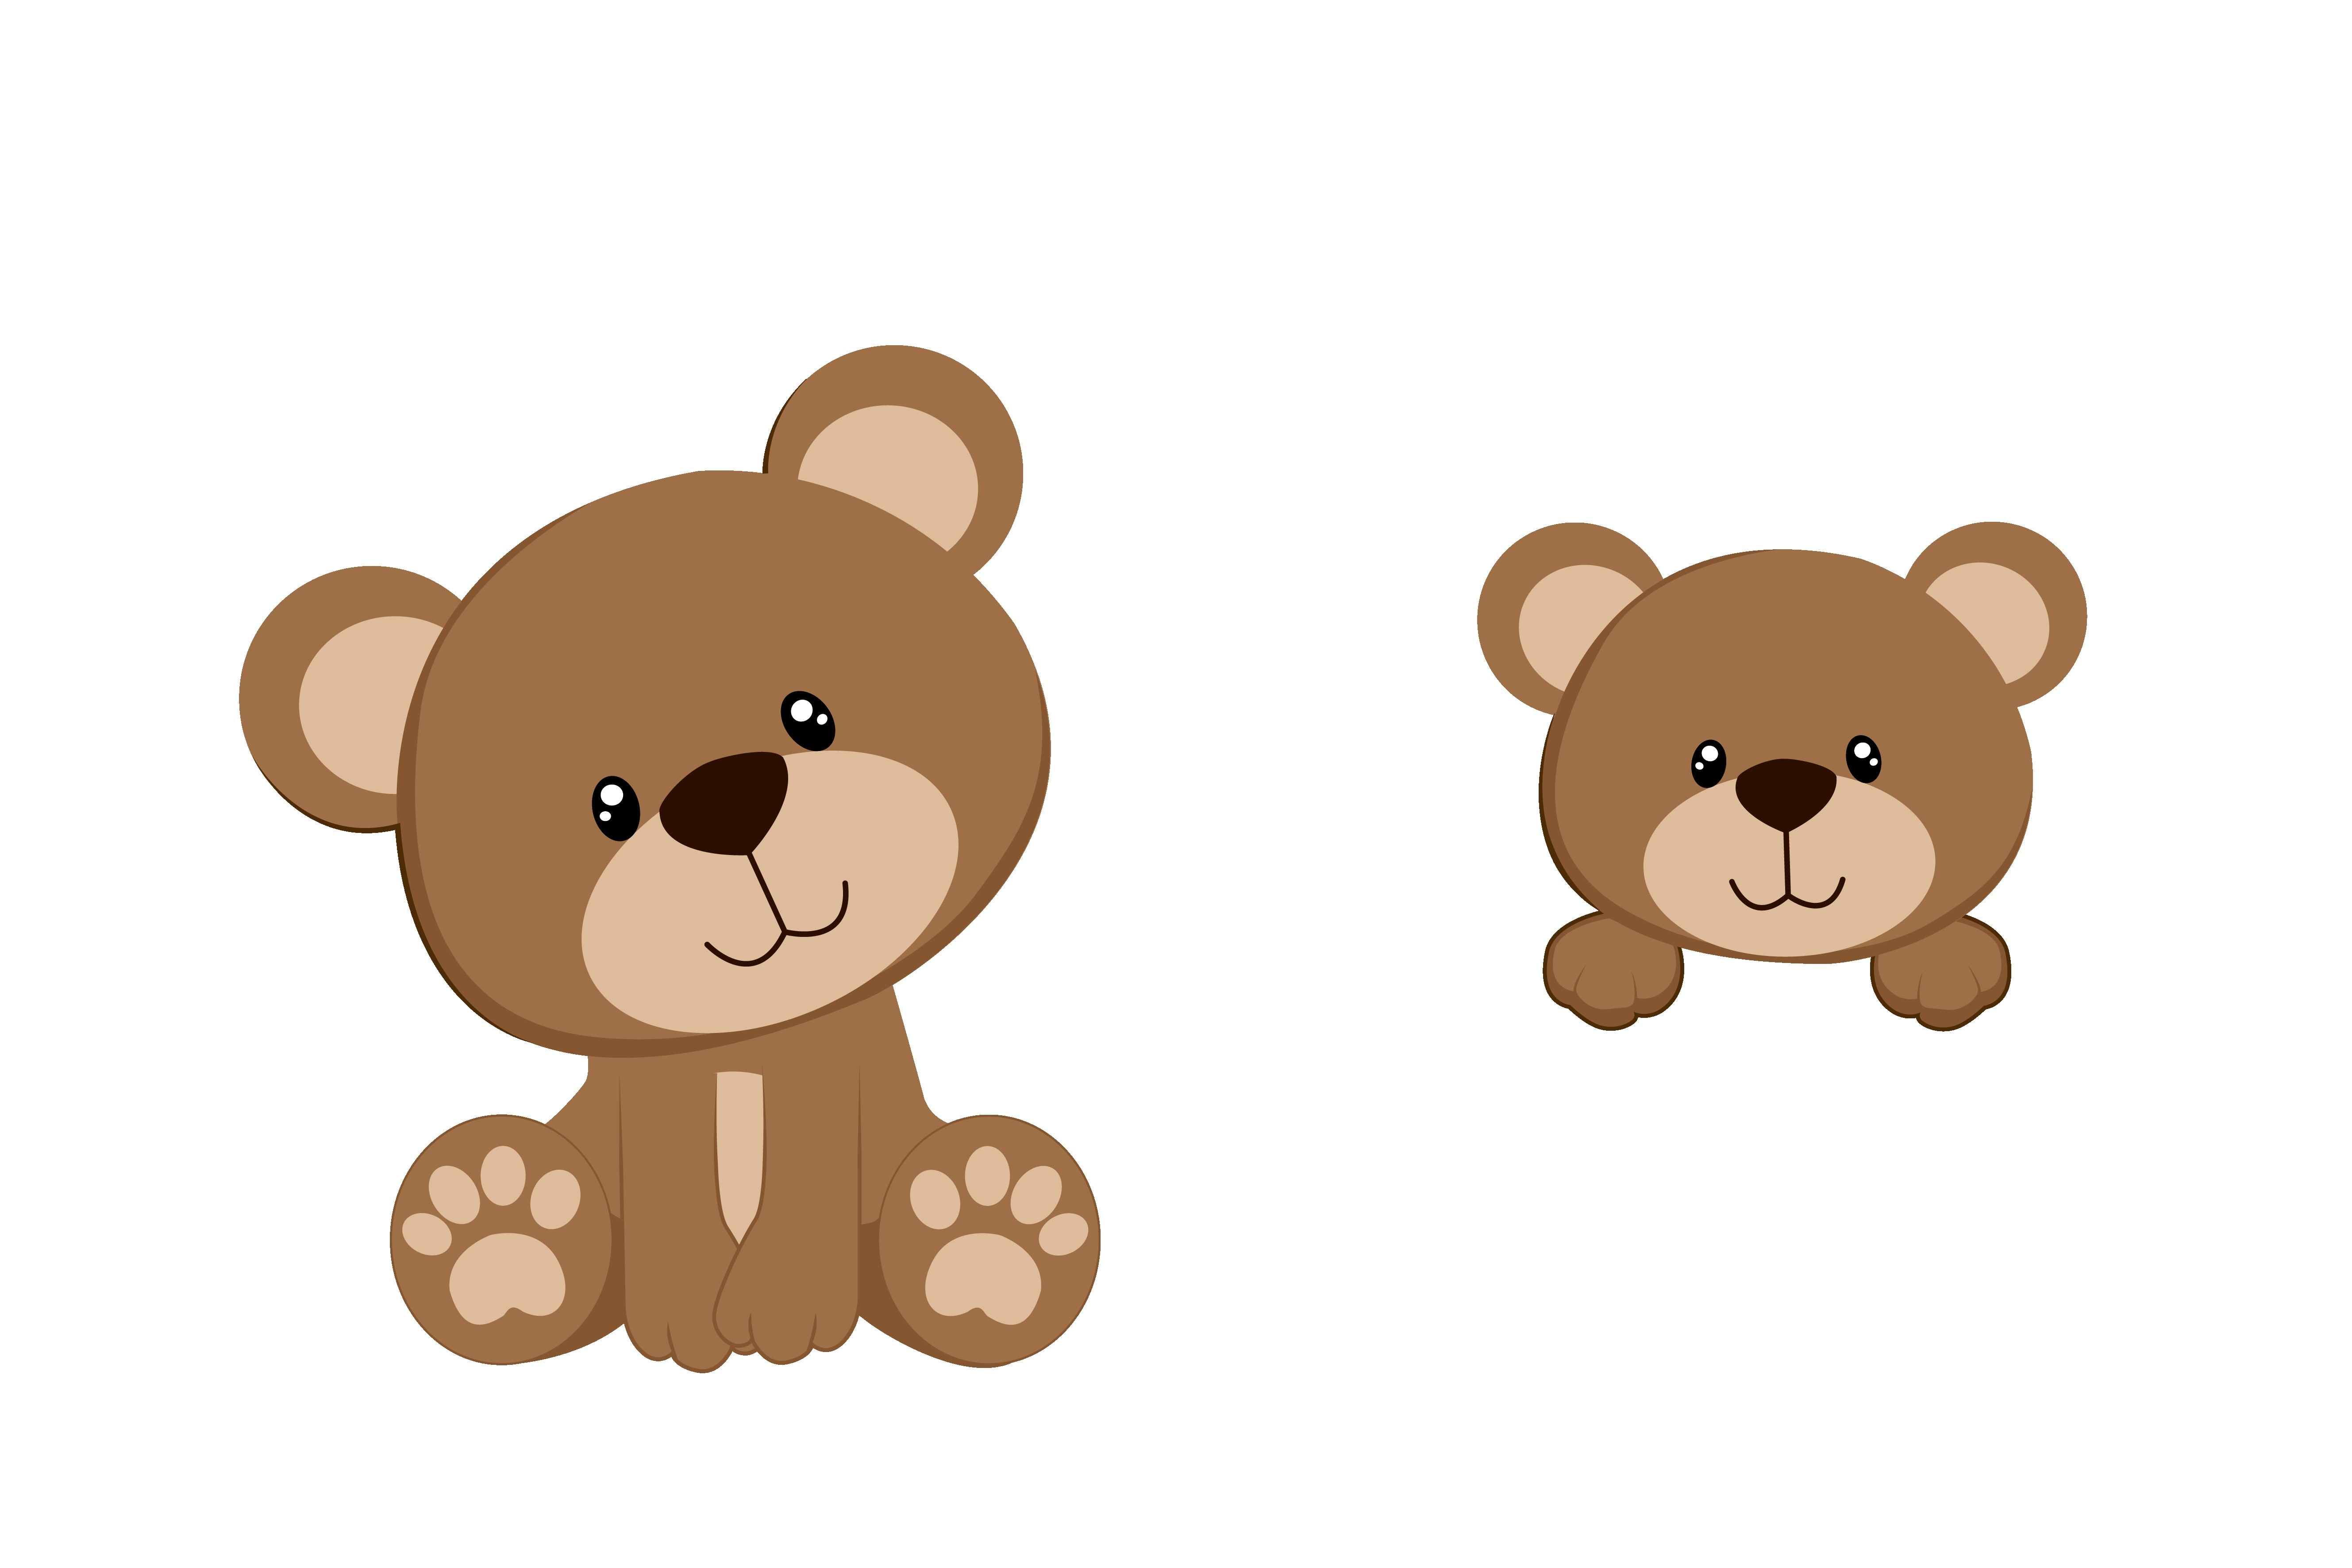 Teddy bear baby shower clipart graphic free library Teddy Bear Baby Shower Decorations Unique Baby Shower Teddy ... graphic free library